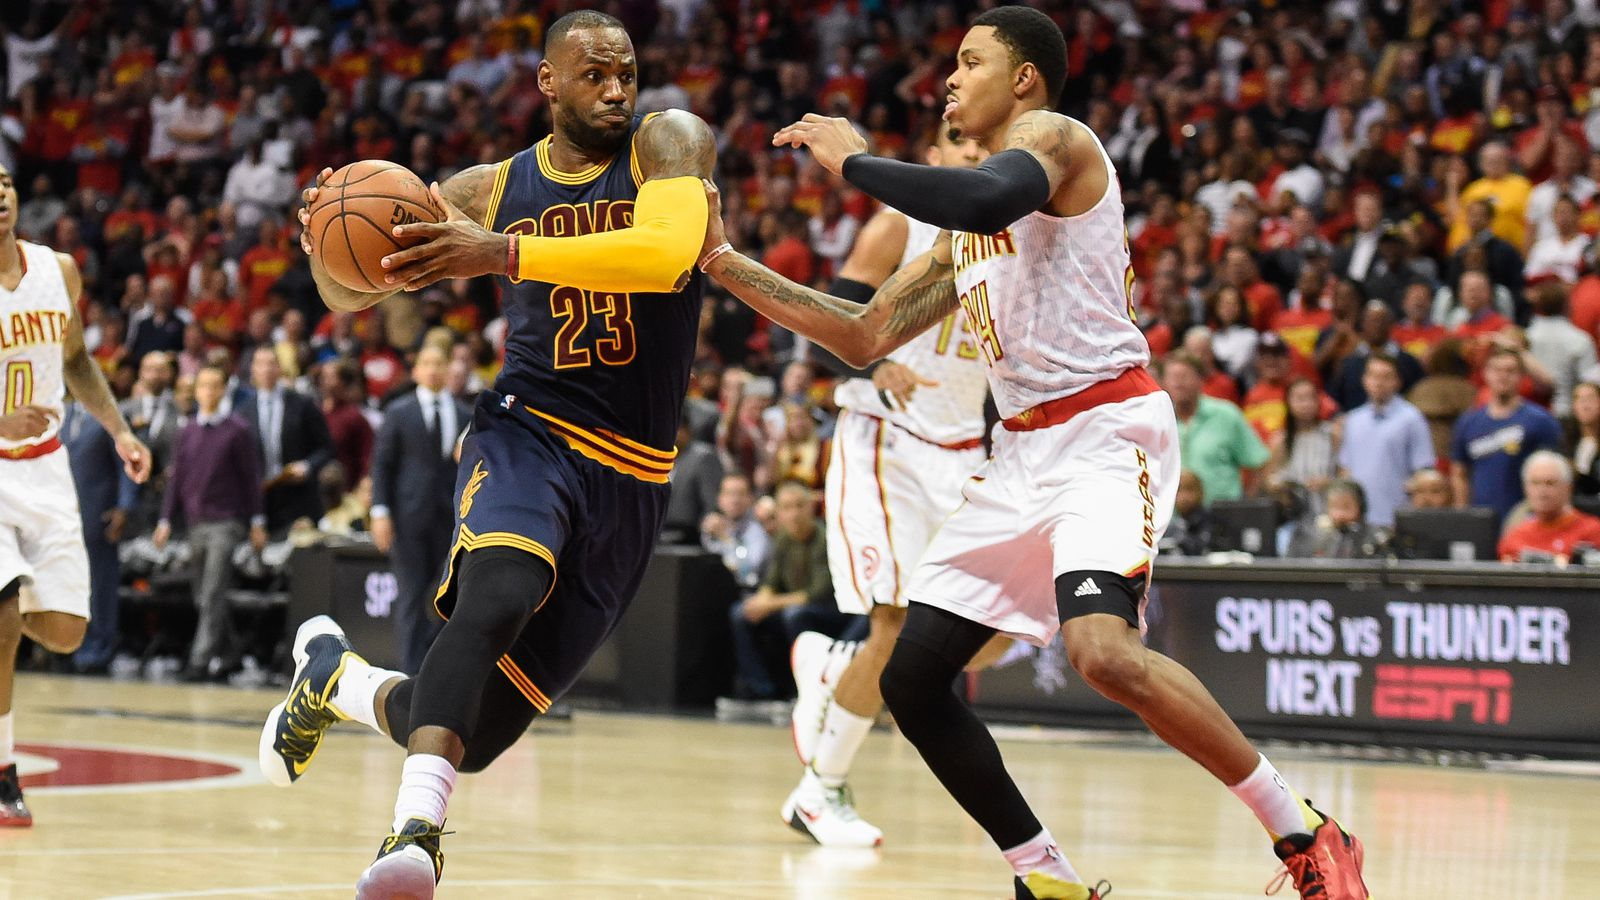 Cavaliers vs. Hawks, NBA playoffs 2016: Start time, TV schedule and live stream for Game 4